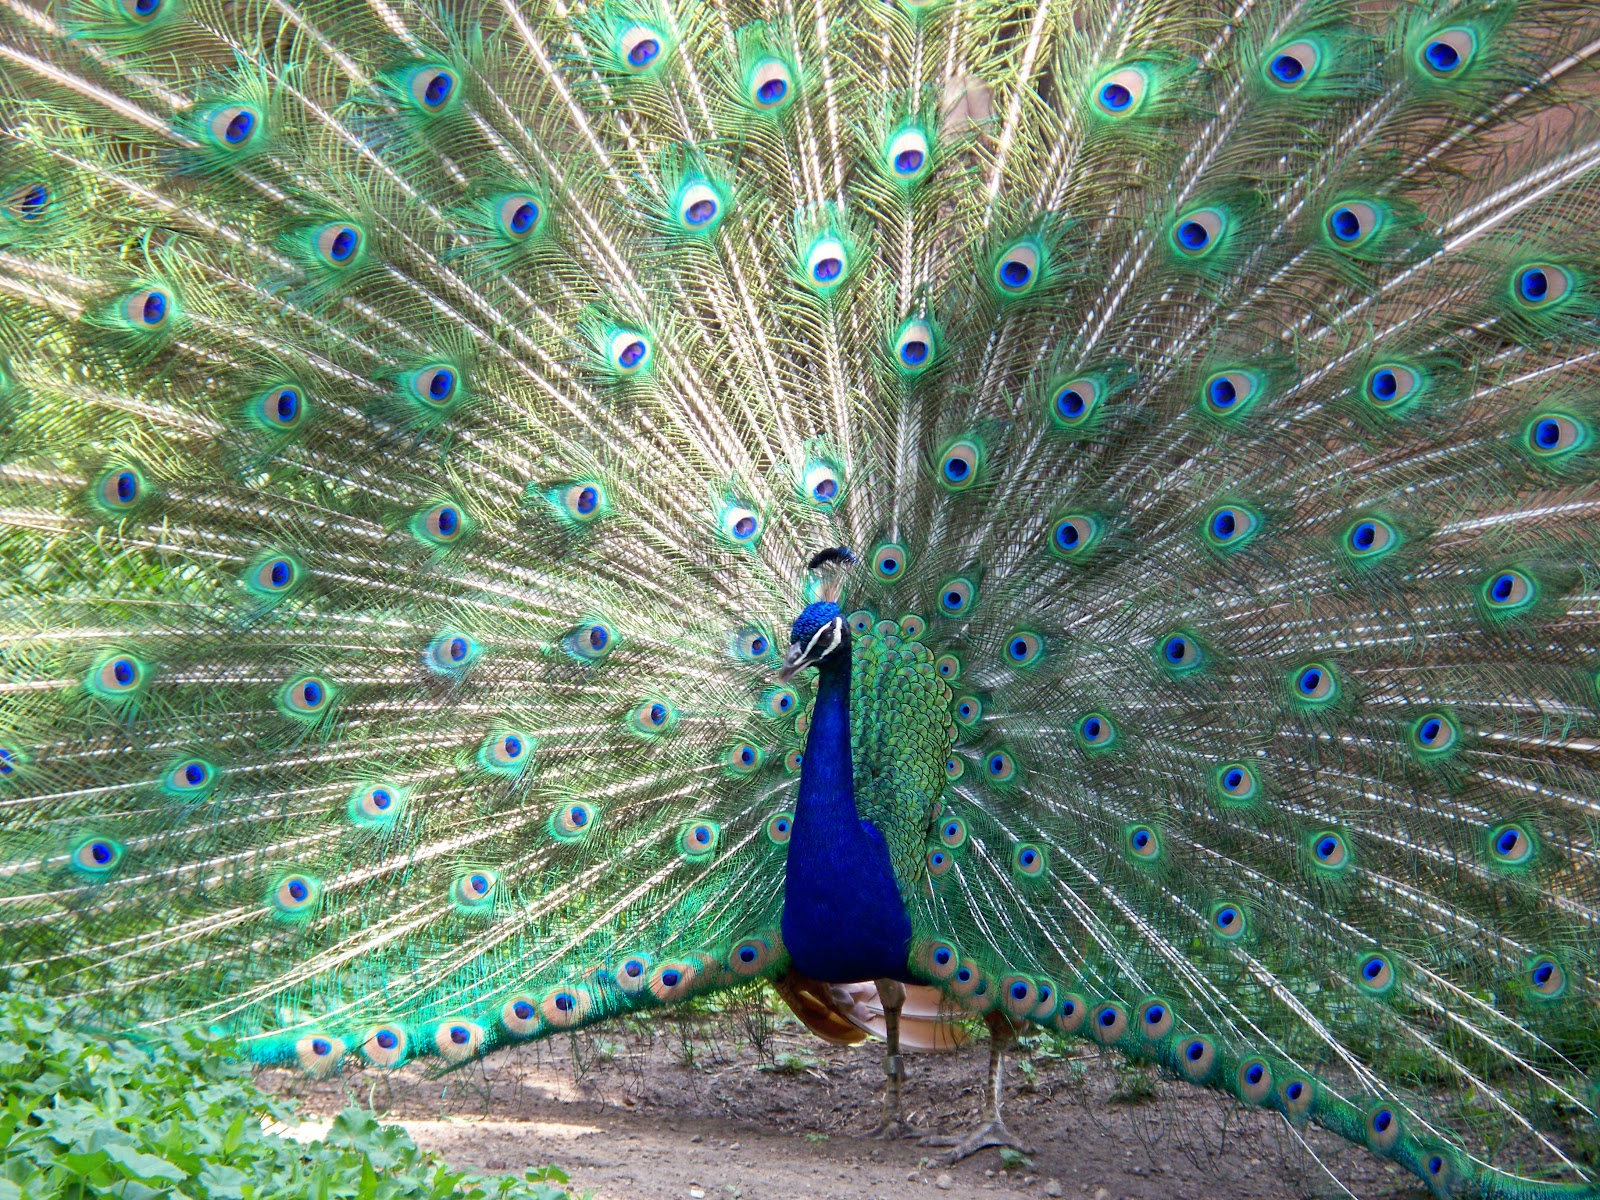 File:Peacock Milwaukee County ...